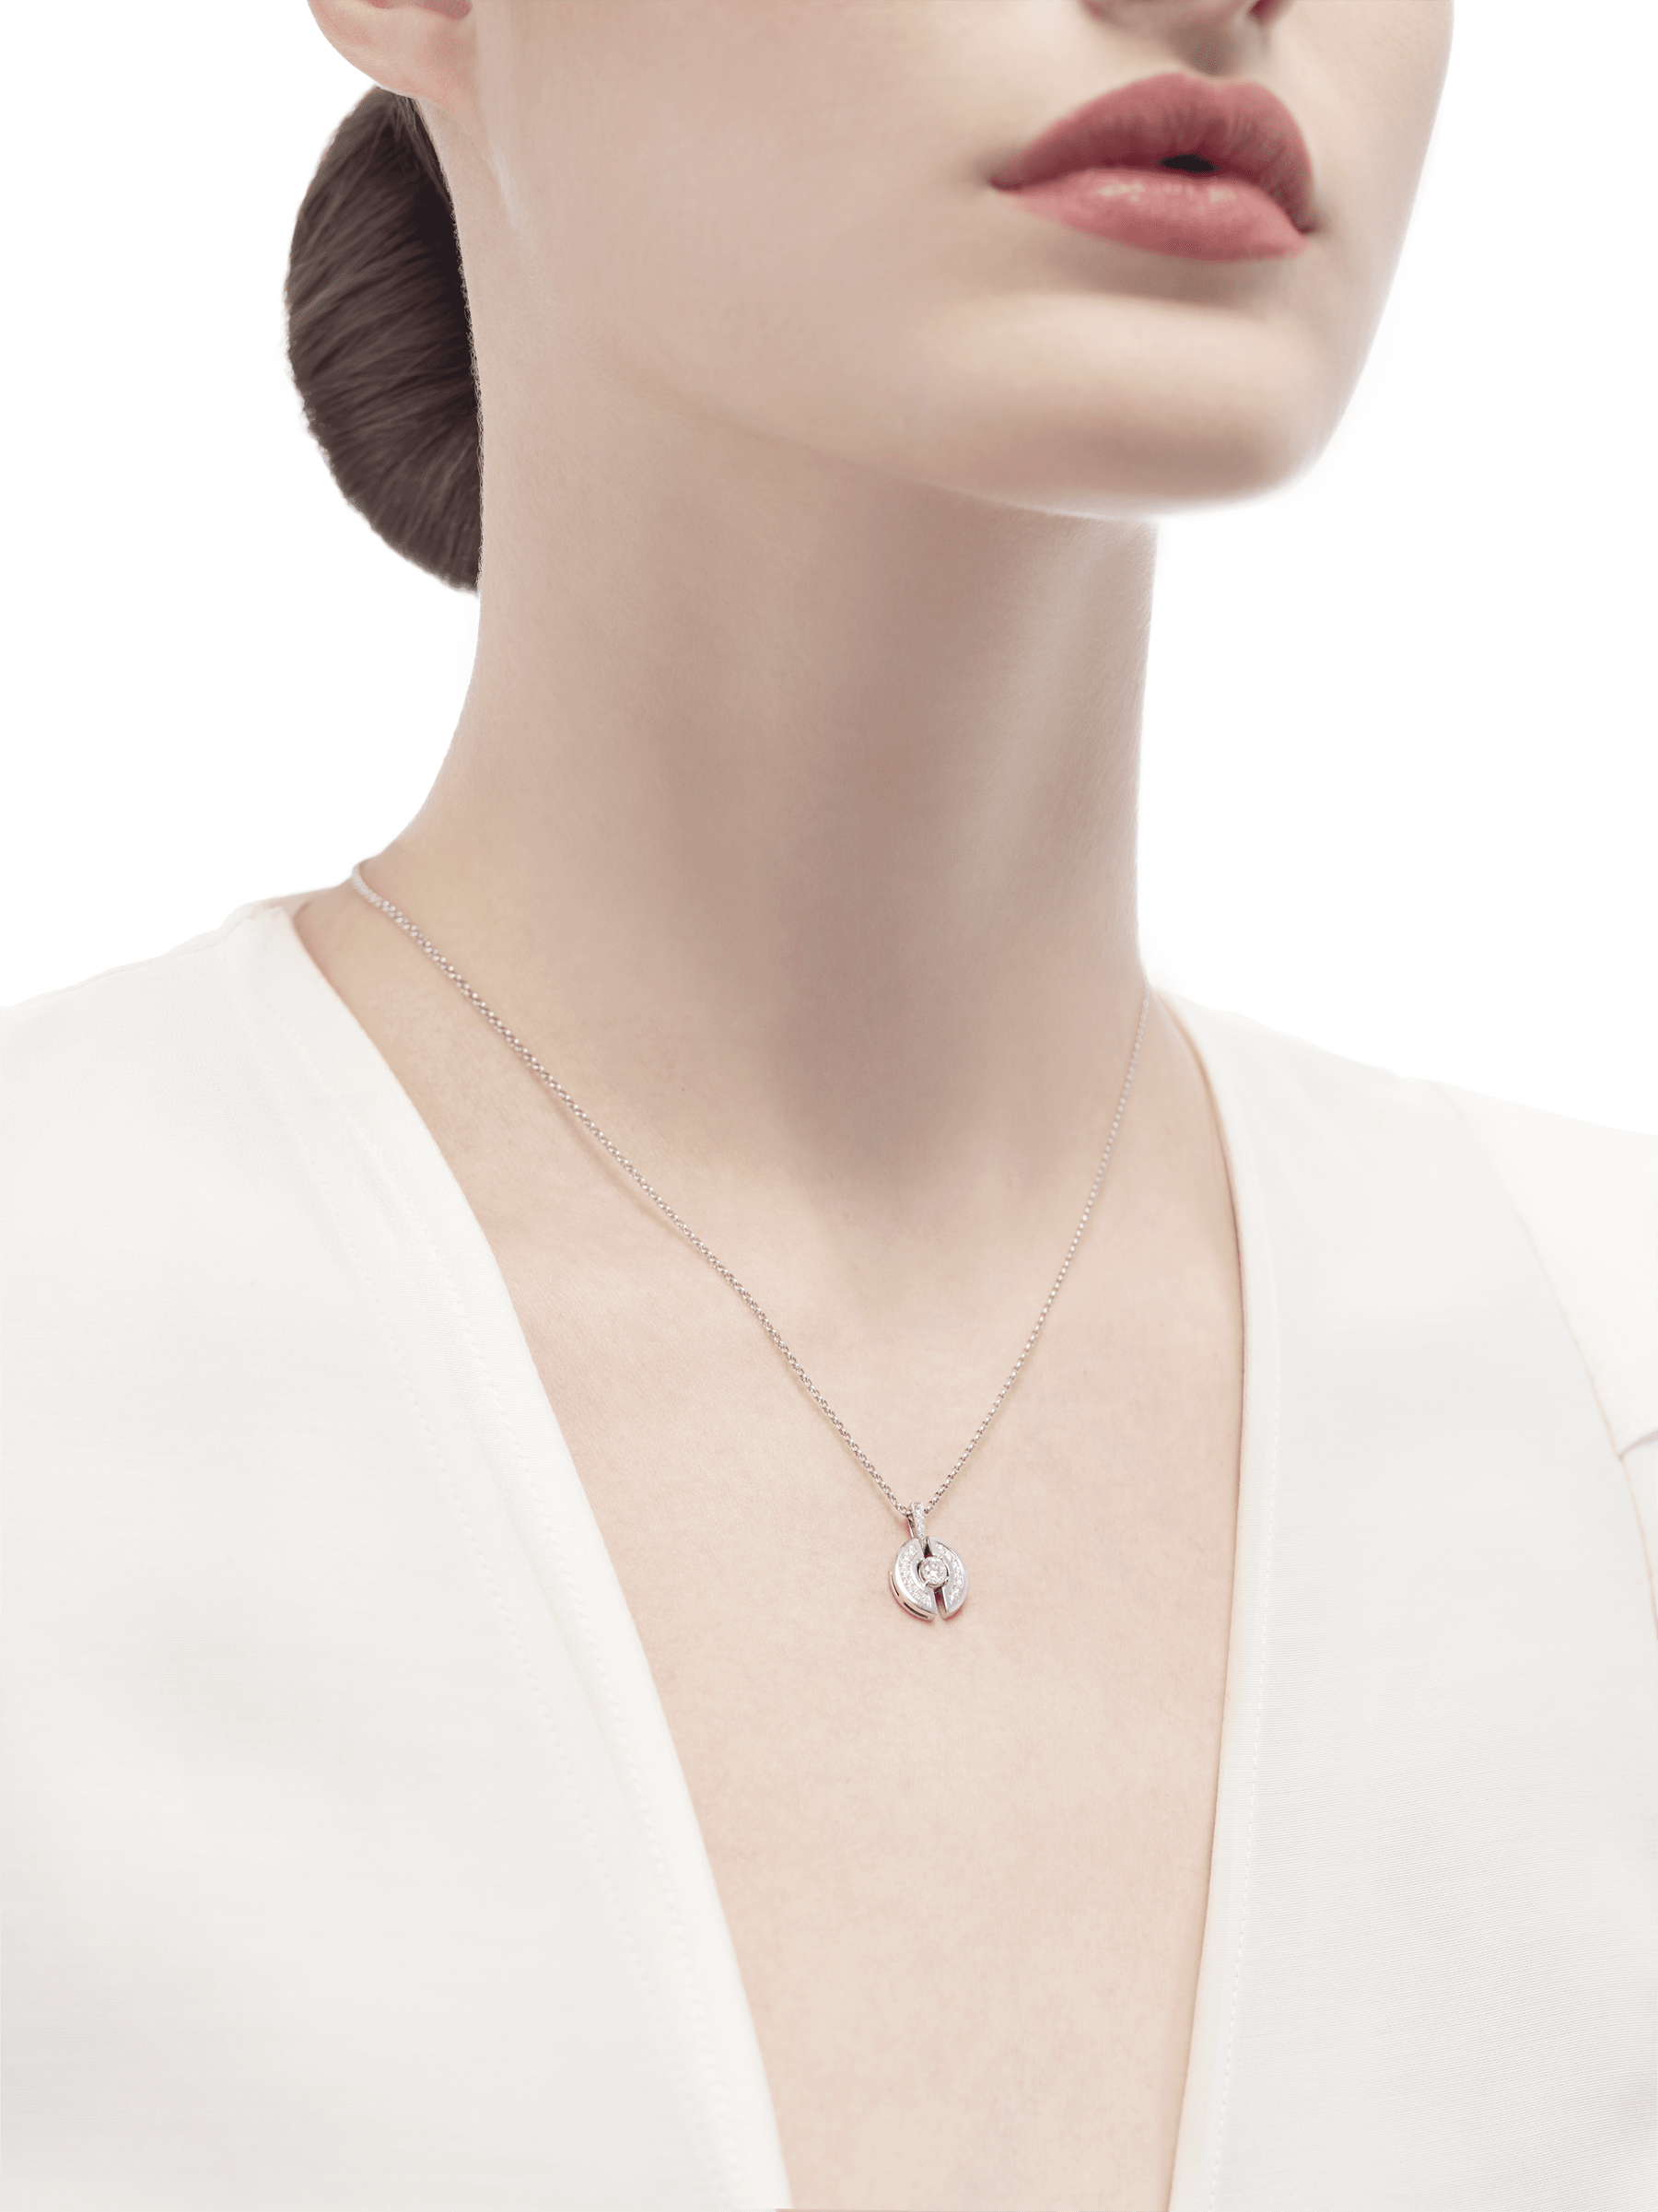 Parentesi necklace with 18 kt white gold chain and pendant, set with a central diamond and pavé diamonds. 354312 image 4